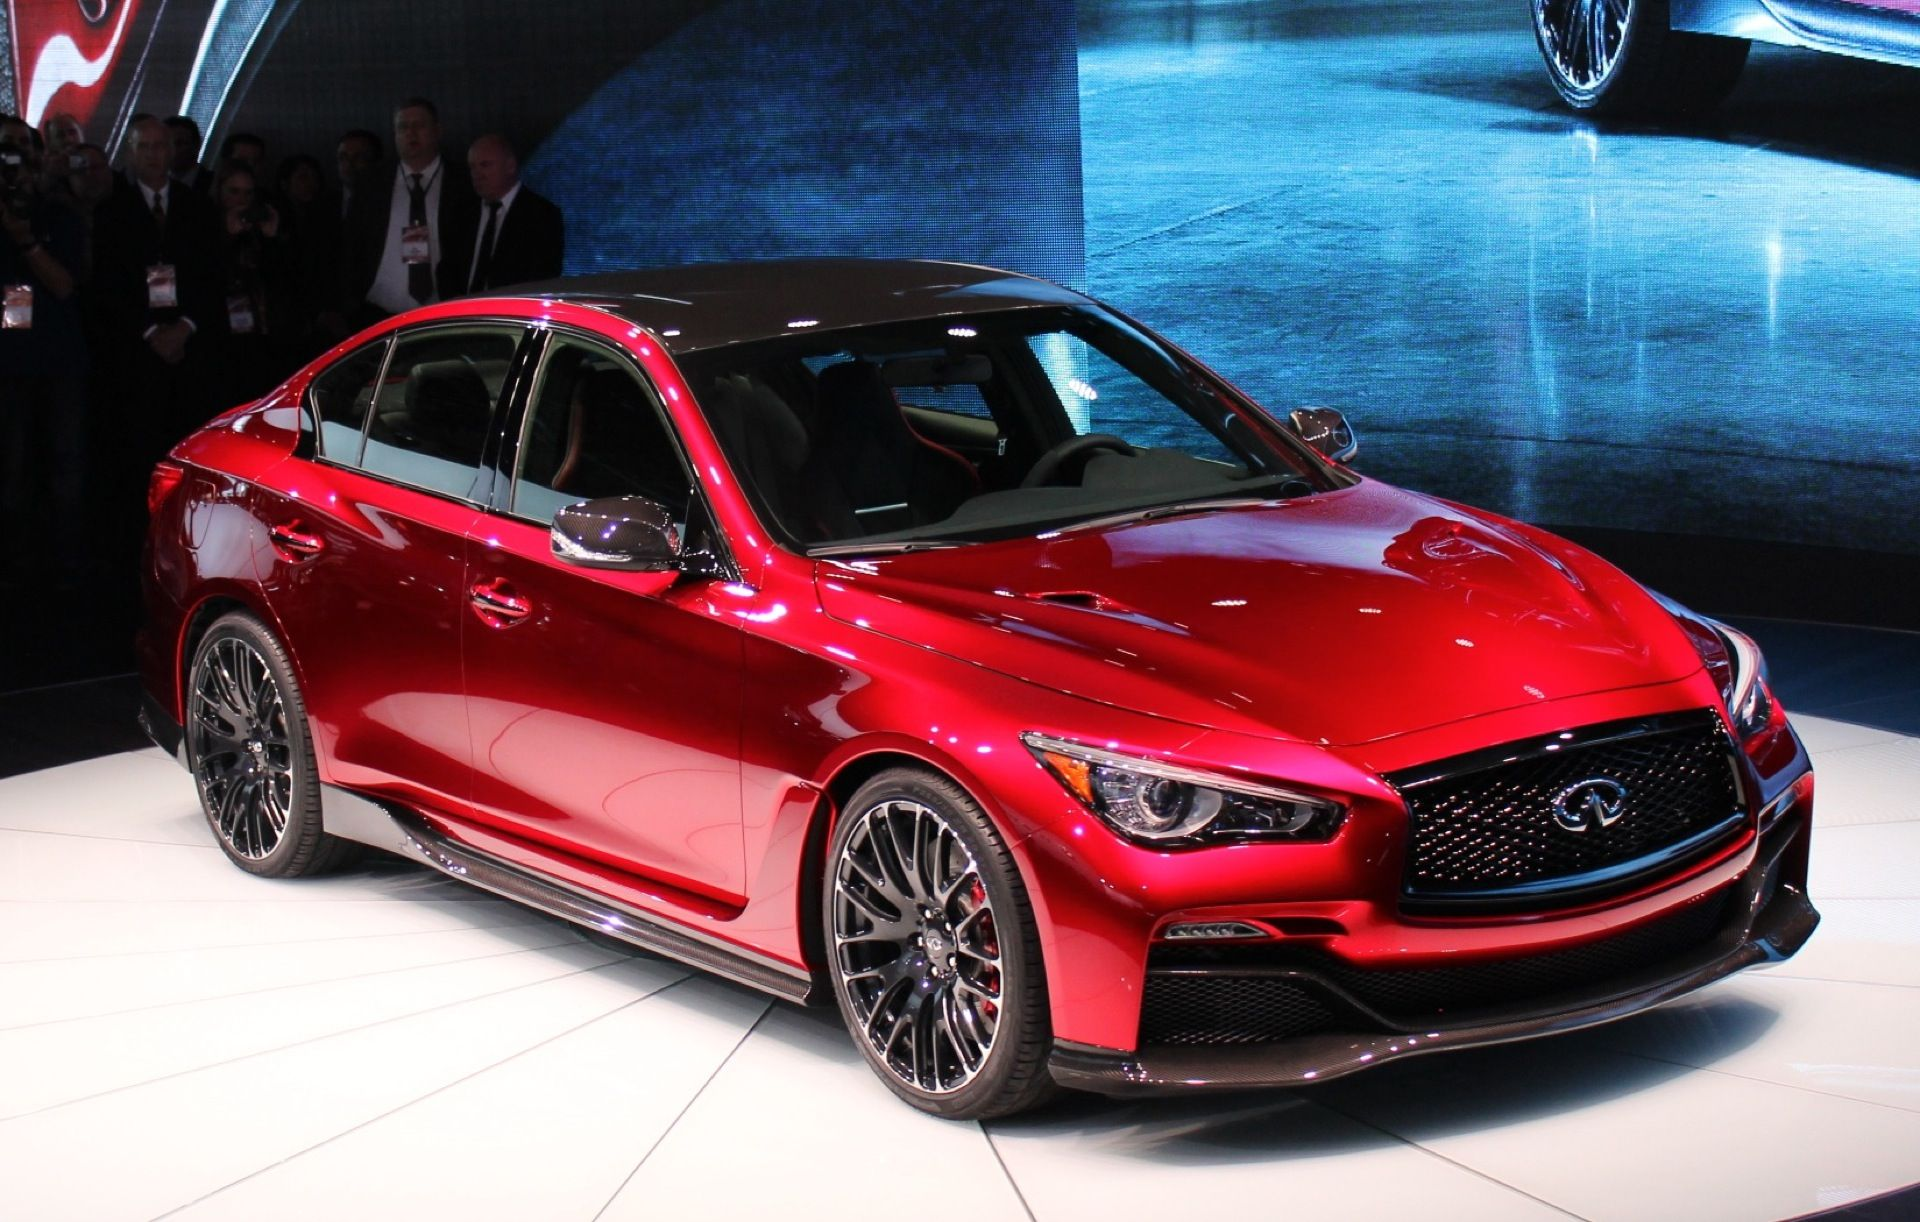 Eau rouge aims to become infiniti performance sub brand report